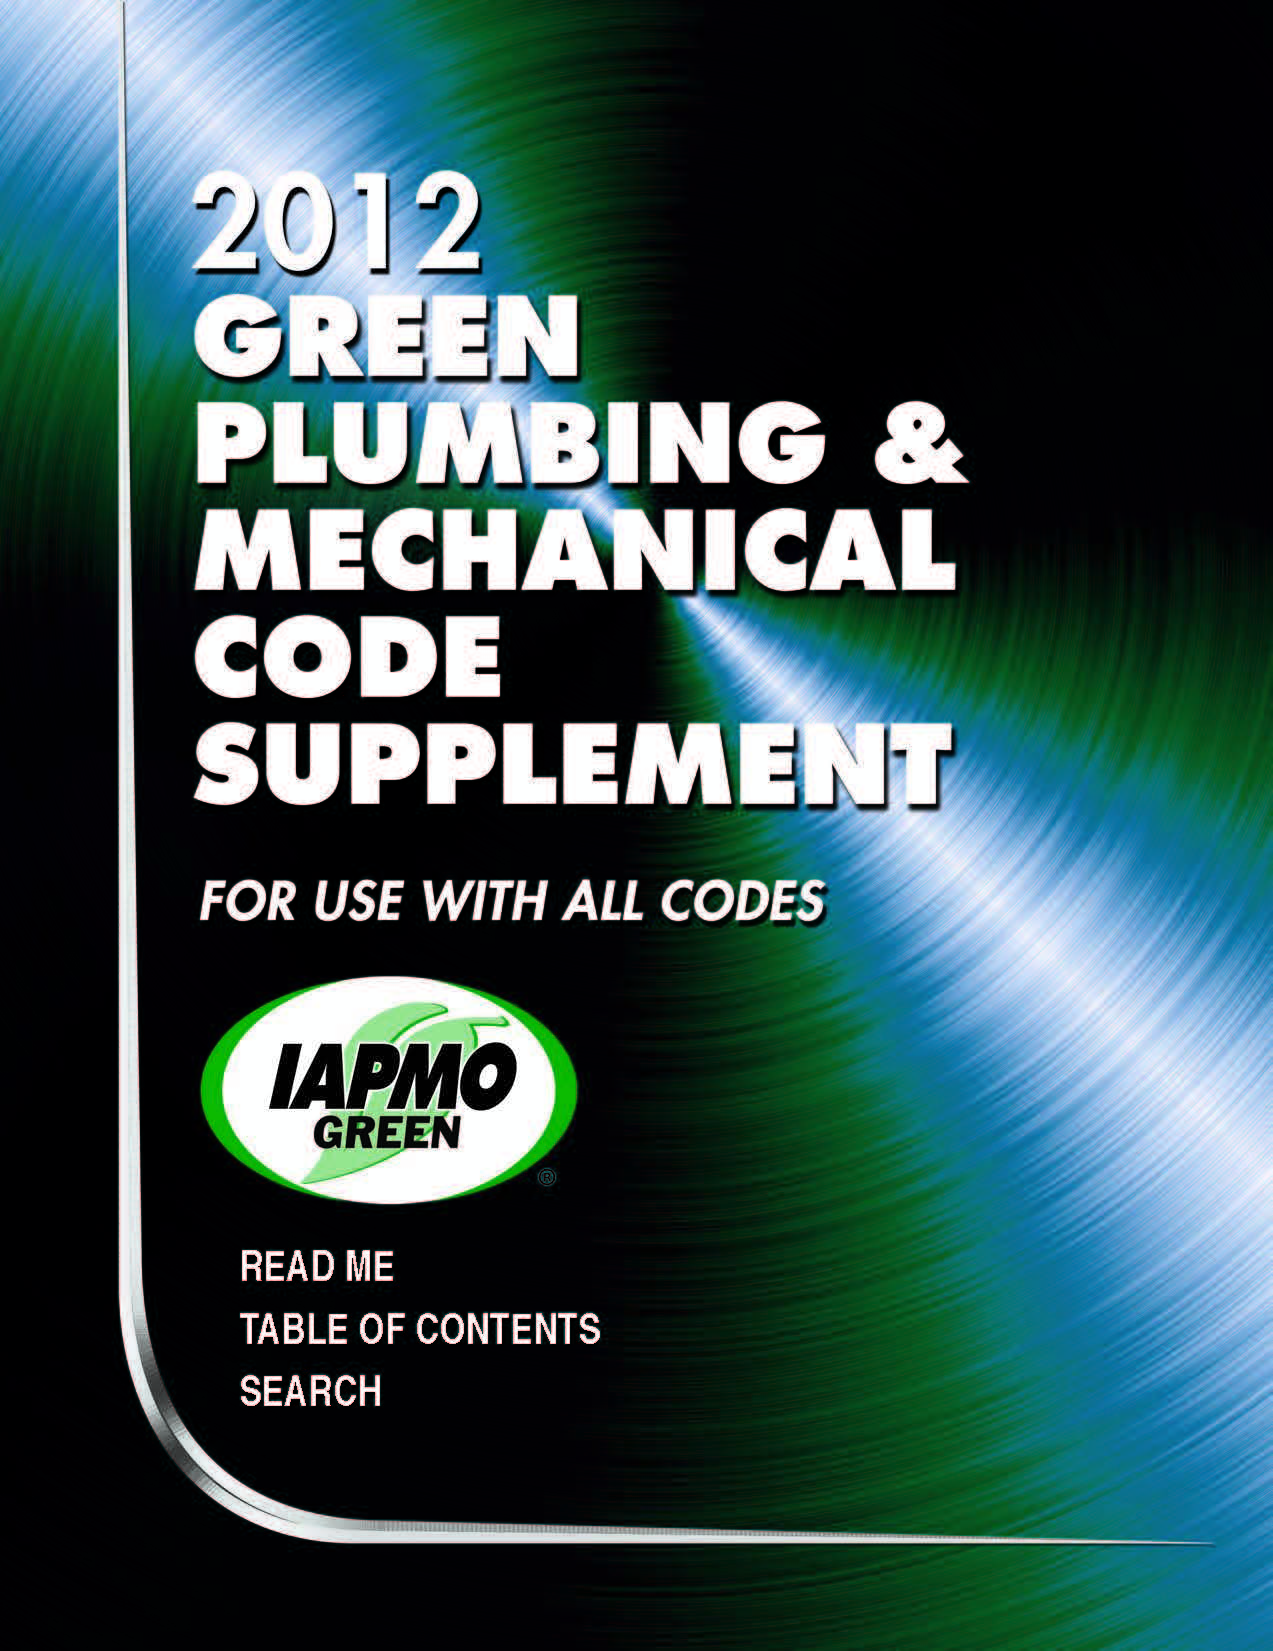 IAPMO 2012 Green Plumbing and Mechanical Code Supplement